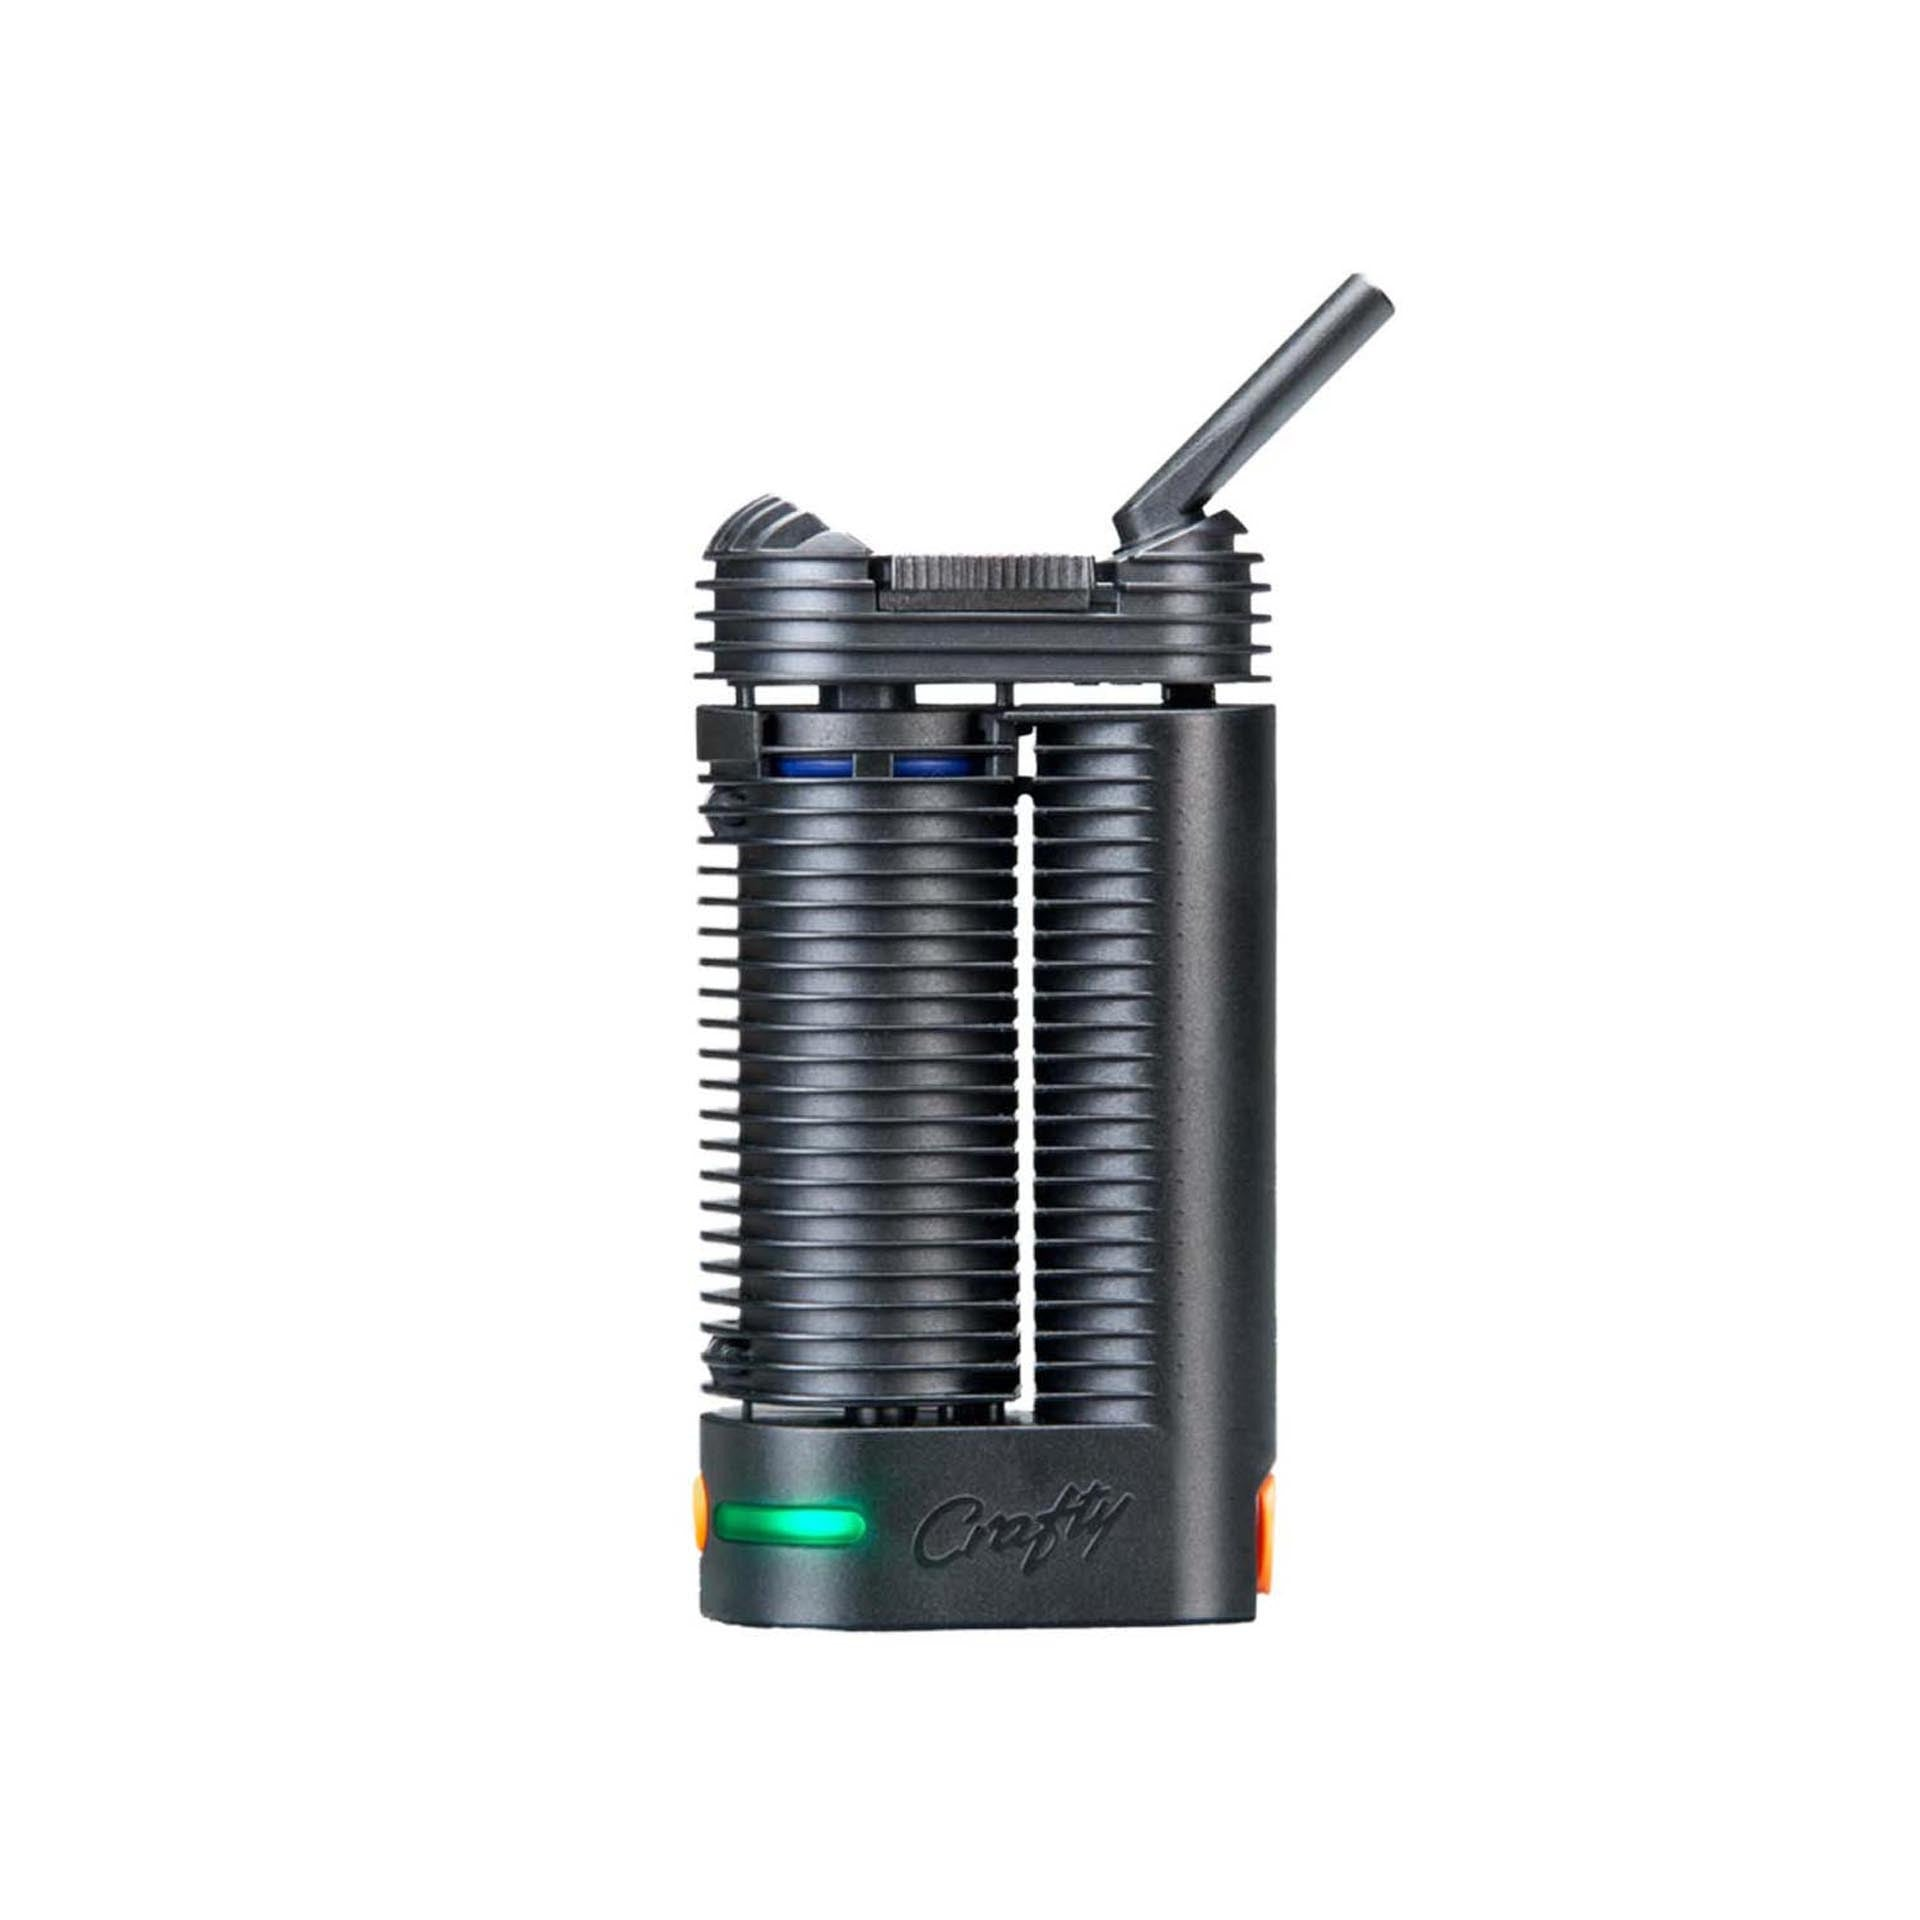 crafty vaporizer storz